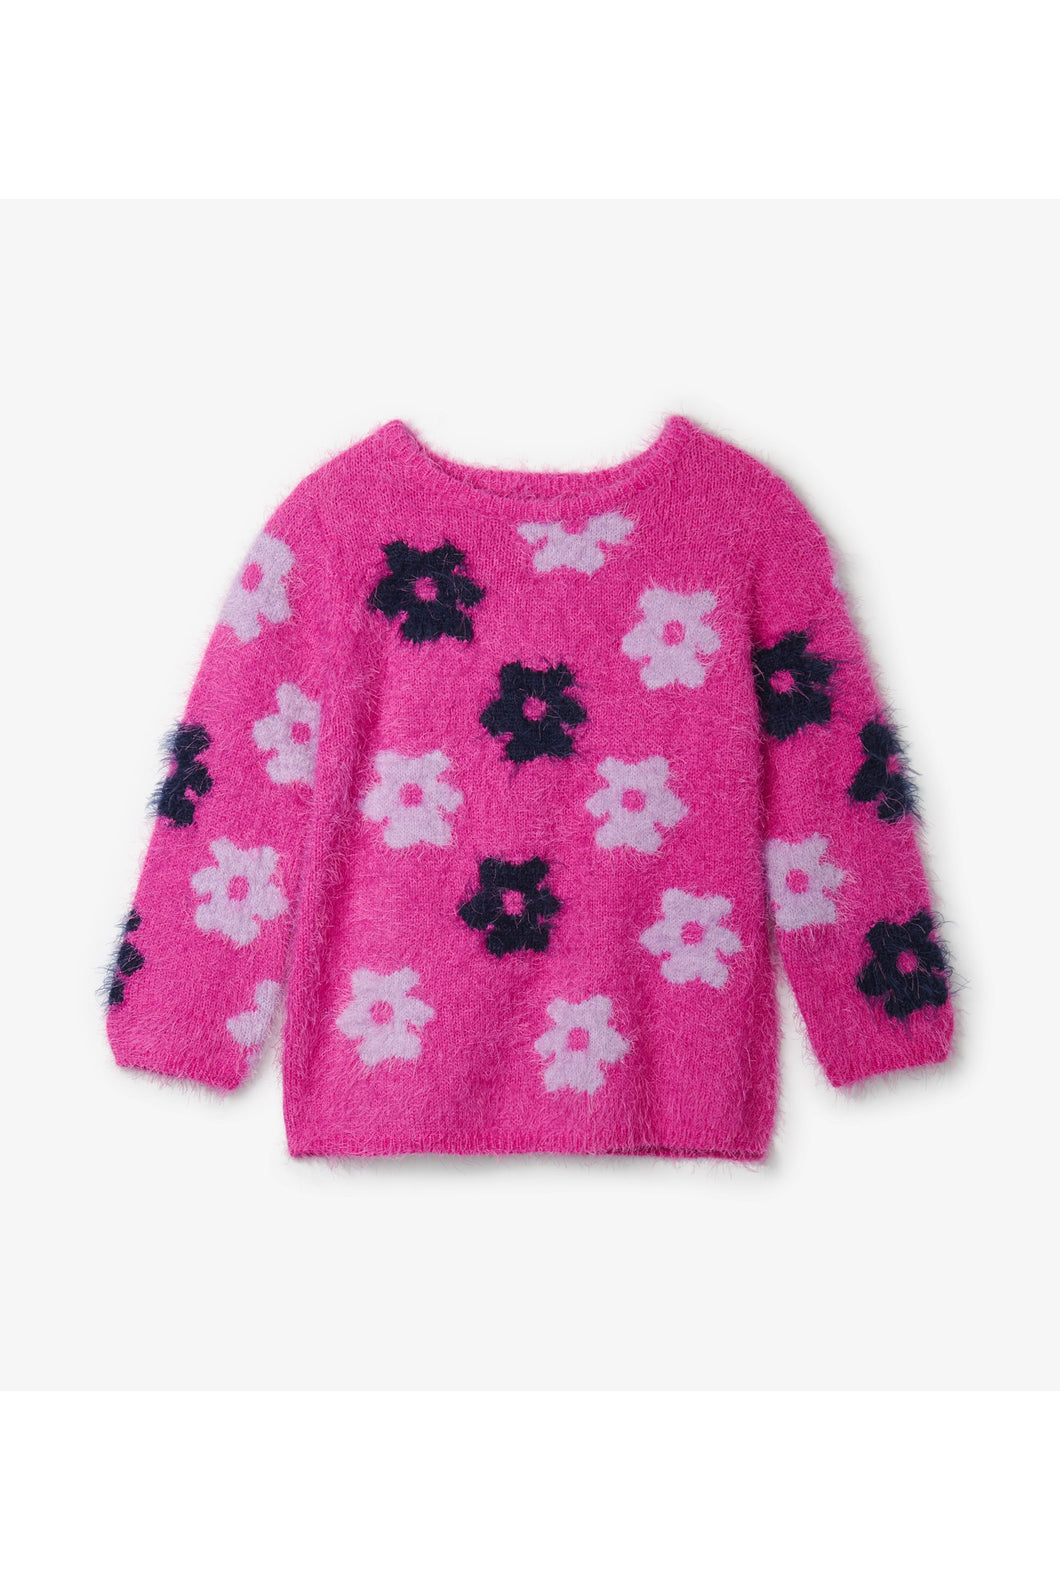 FUZZY RETRO FLOWERS SWEATER